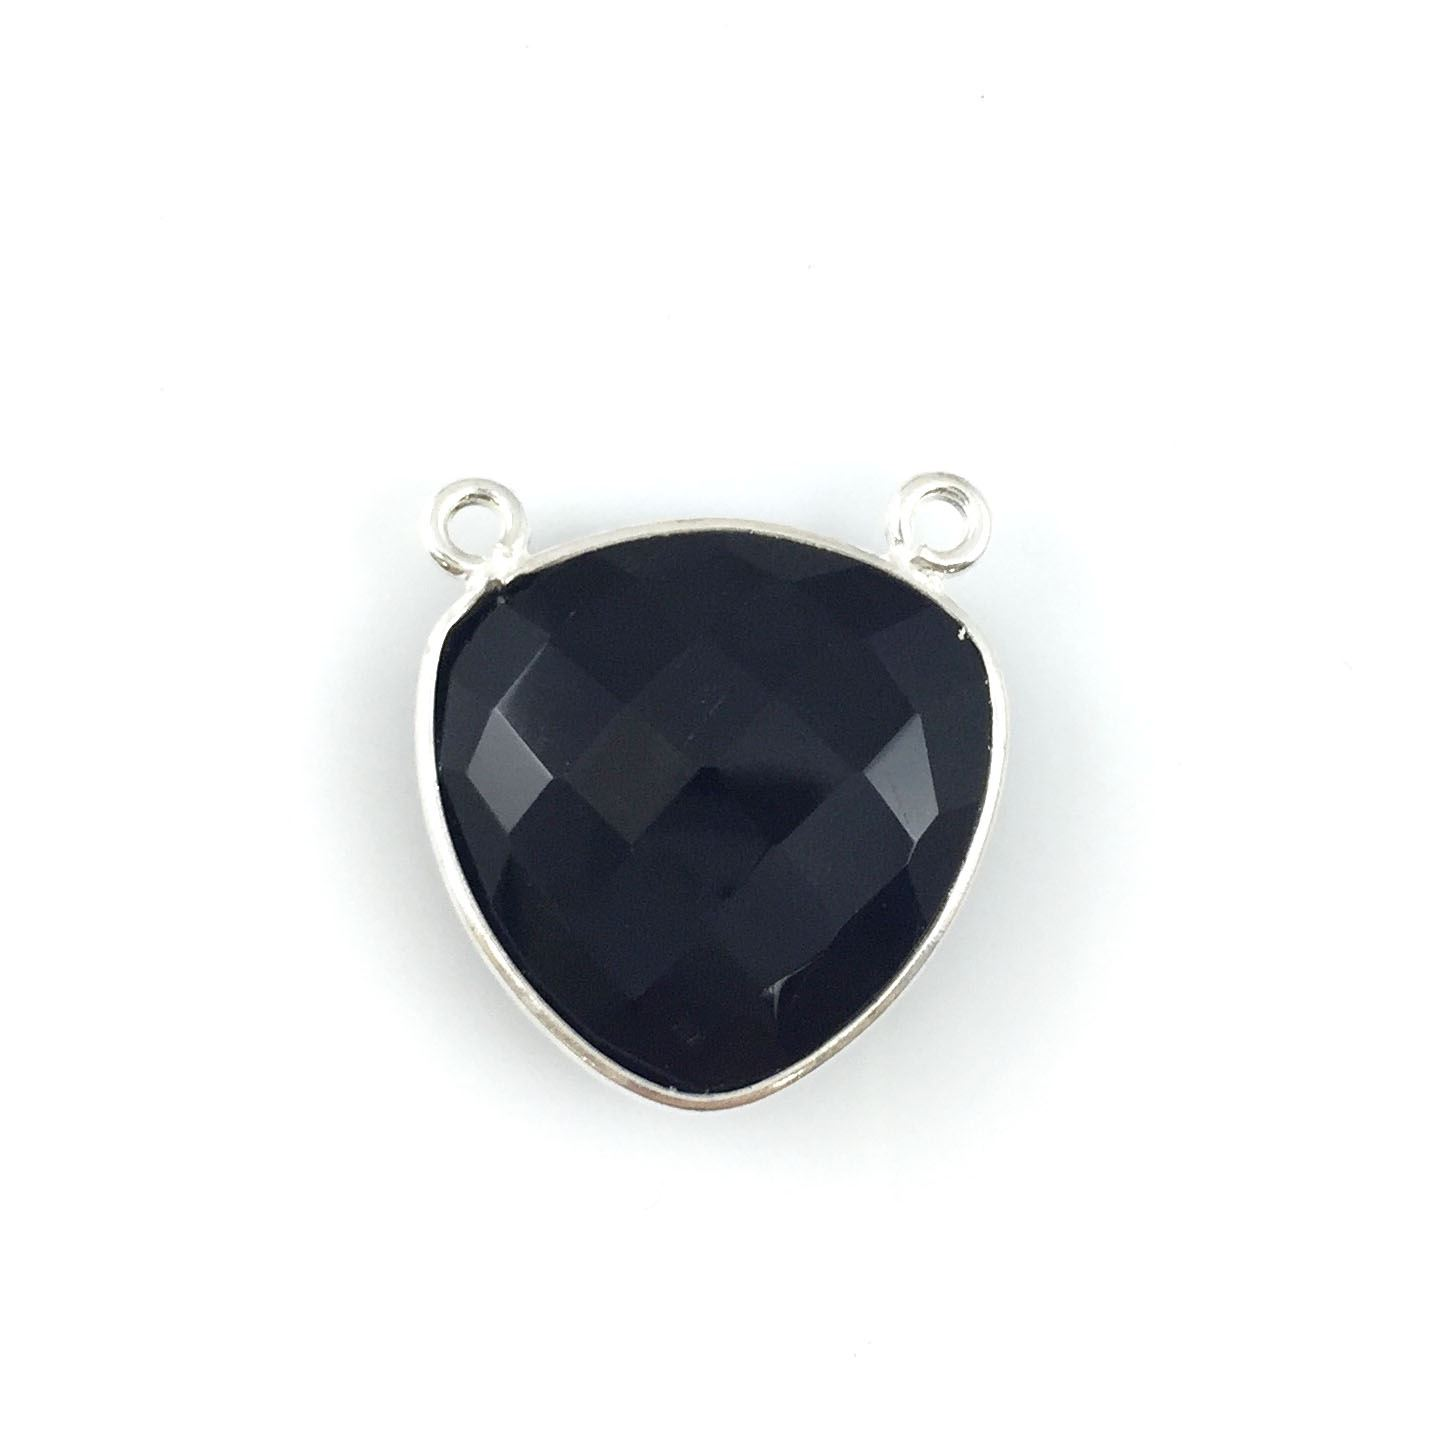 Bezel Gemstone Connector Pendant - Black Onyx - Sterling Silver - Large Trillion Shaped Faceted - 18 mm - 1 piece